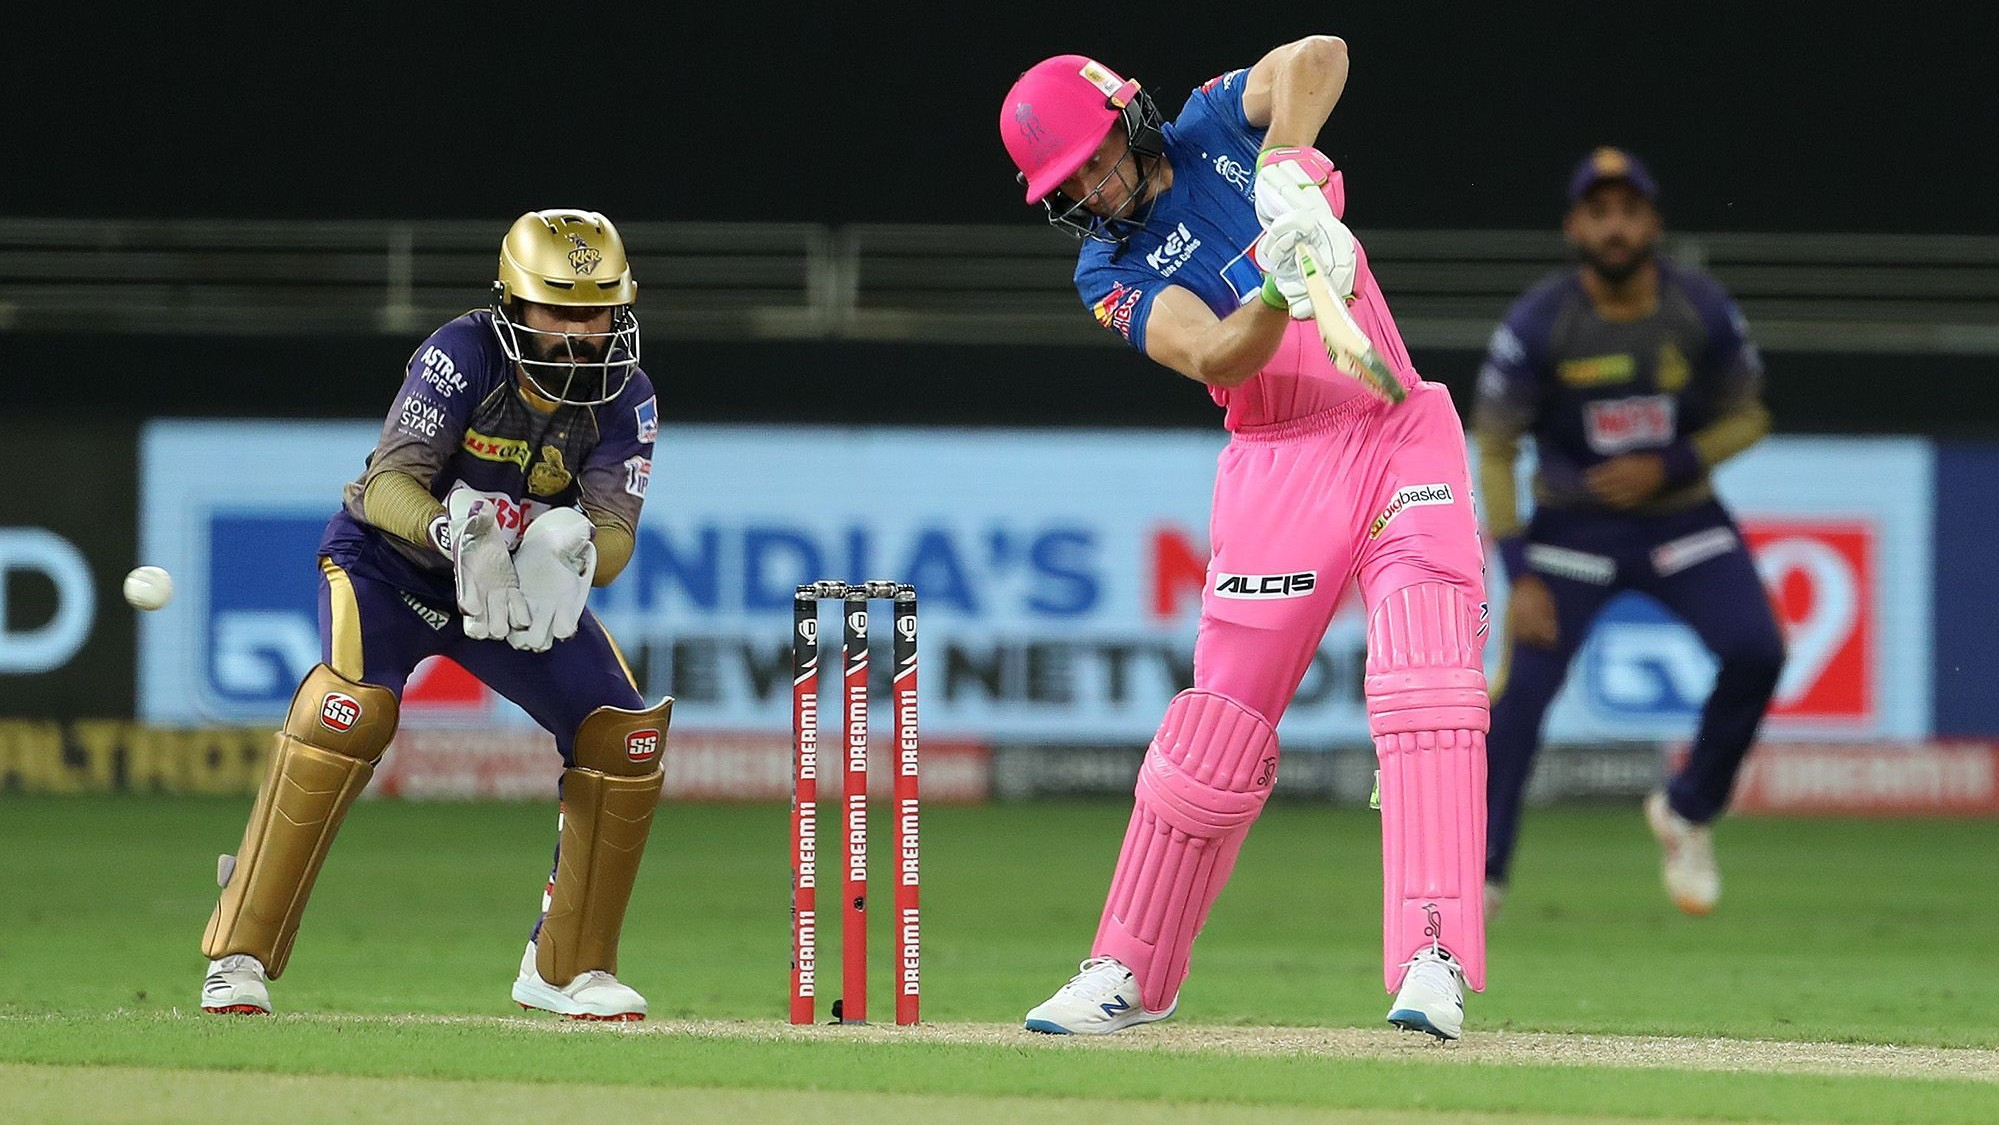 IPL 2020: Match 54, KKR v RR - Statistical Preview of the Match